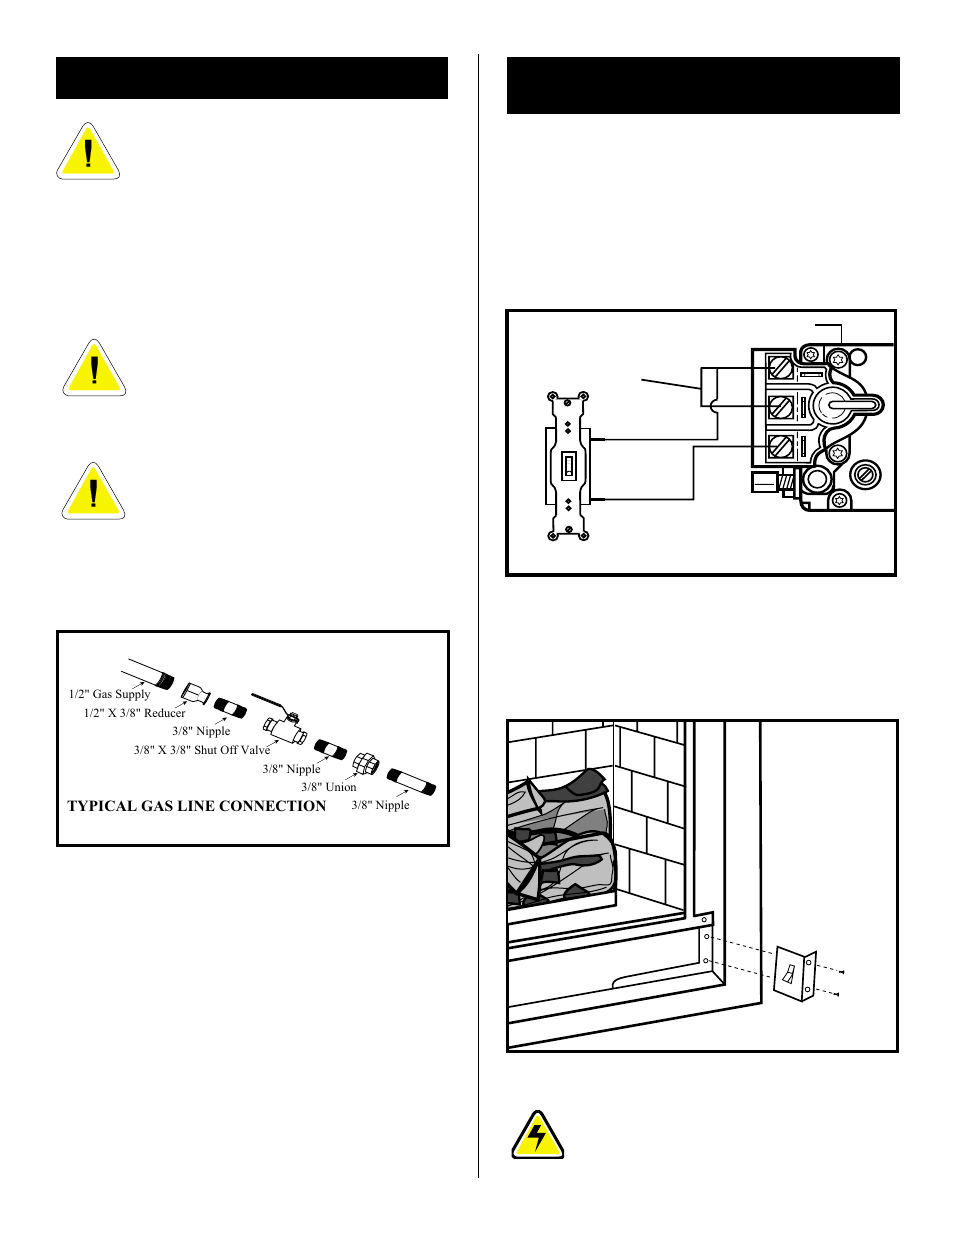 Remote Switch Installation For Rn Rp Gas Line Fireplace Valve Wiring Vermont Casting Dbr36 User Manual Page 7 32